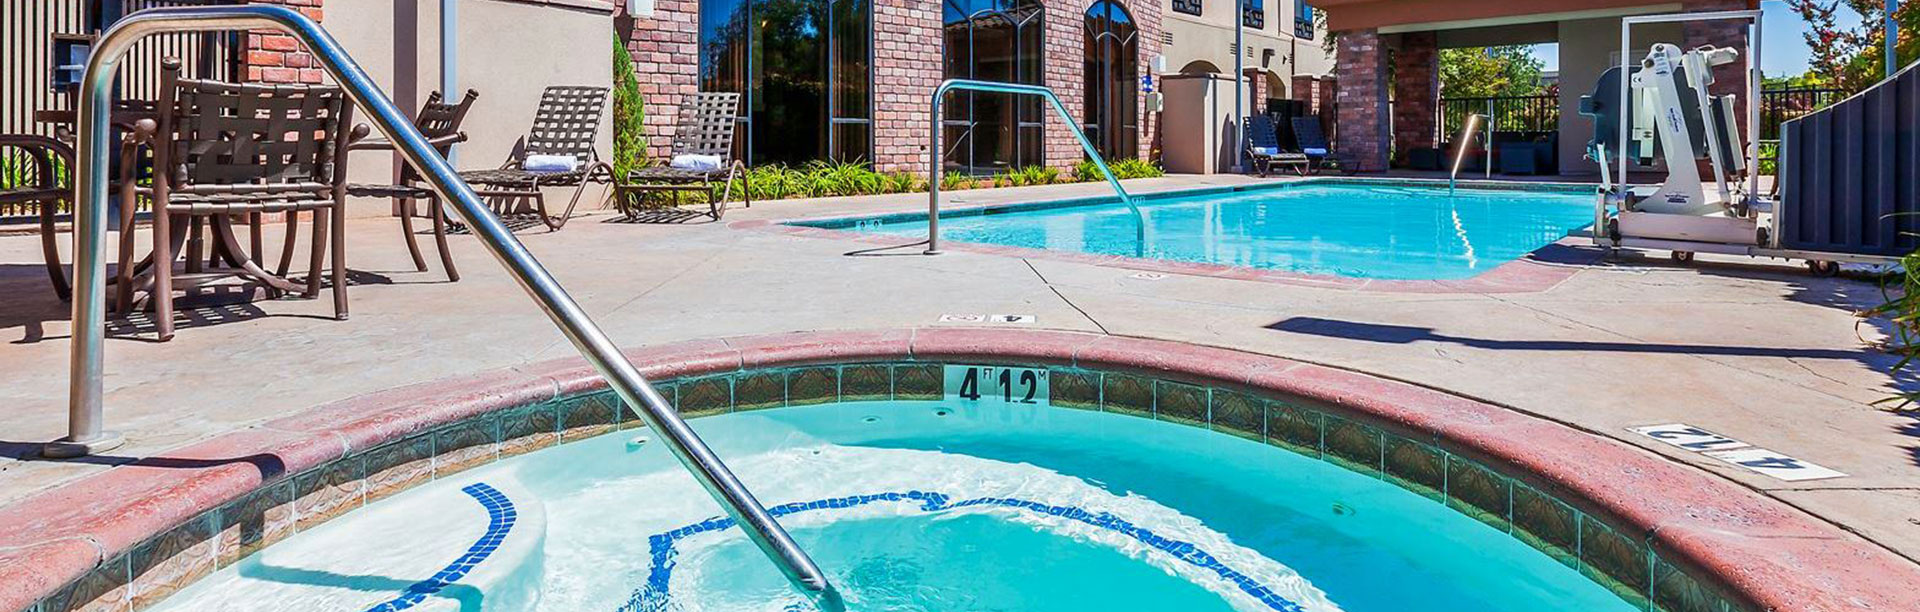 Amenities at Holiday Inn Express Hotel & Suites Atascadero